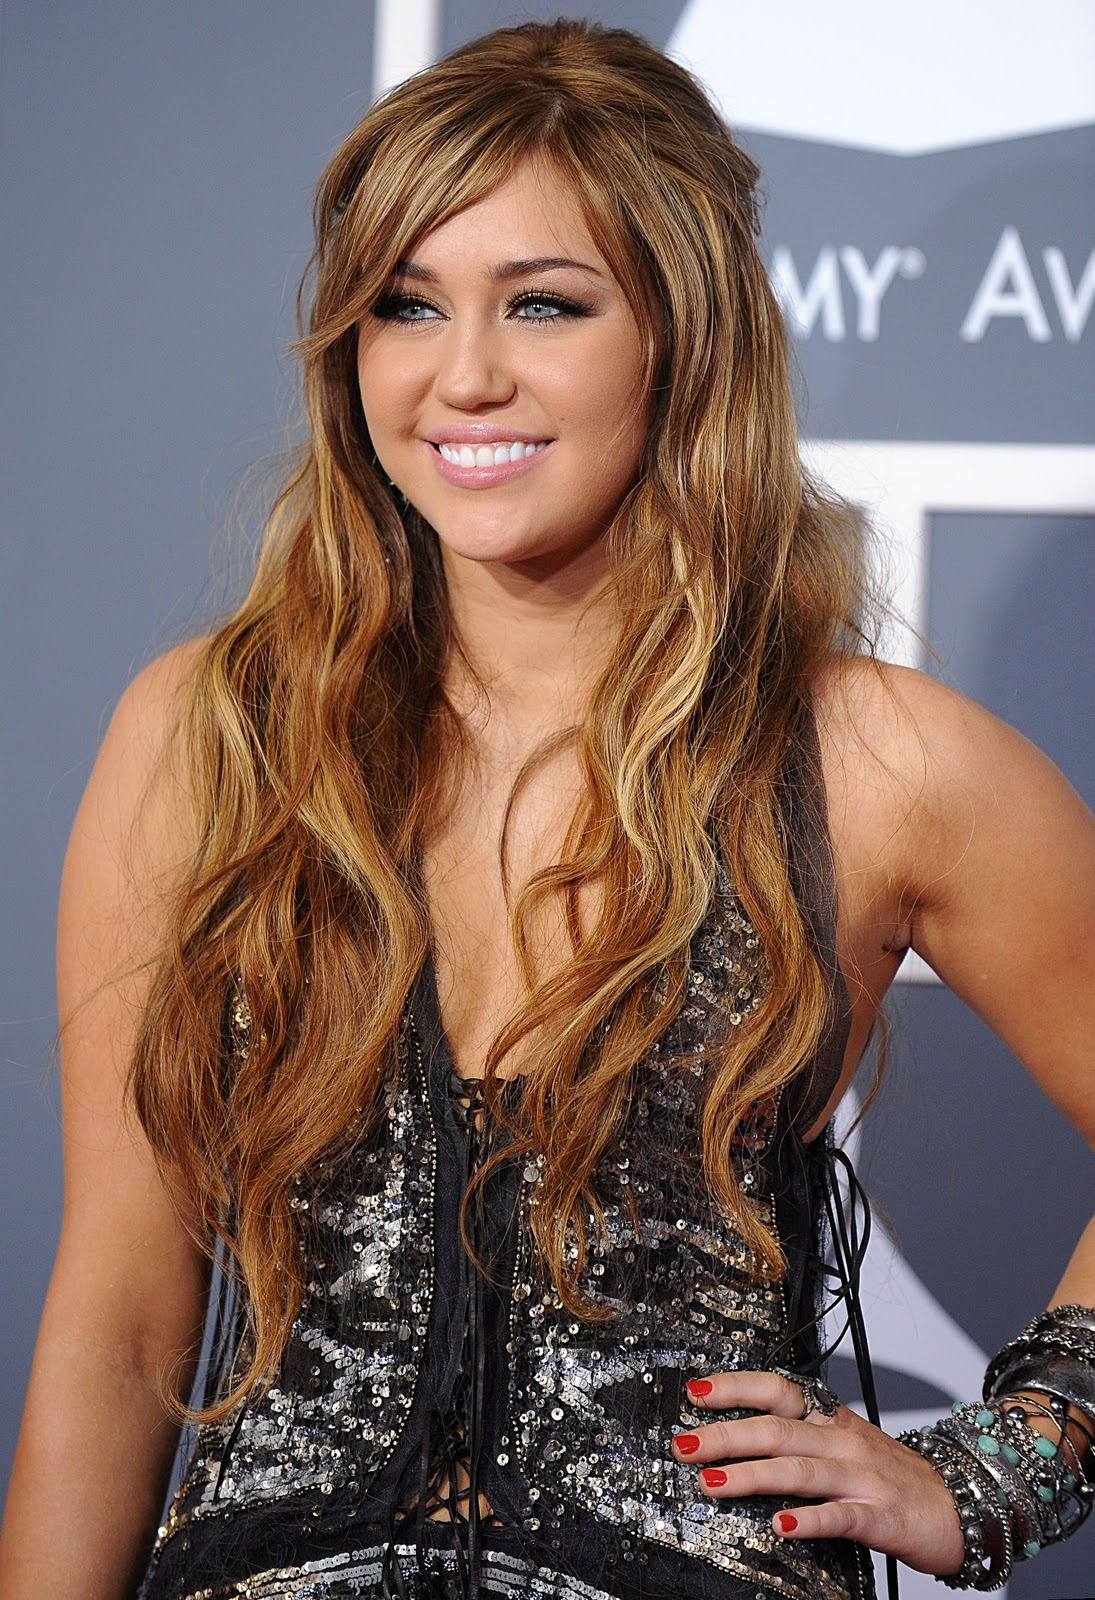 Miley Cyrus Profile Amp Images 2011 Celebrities Gossips